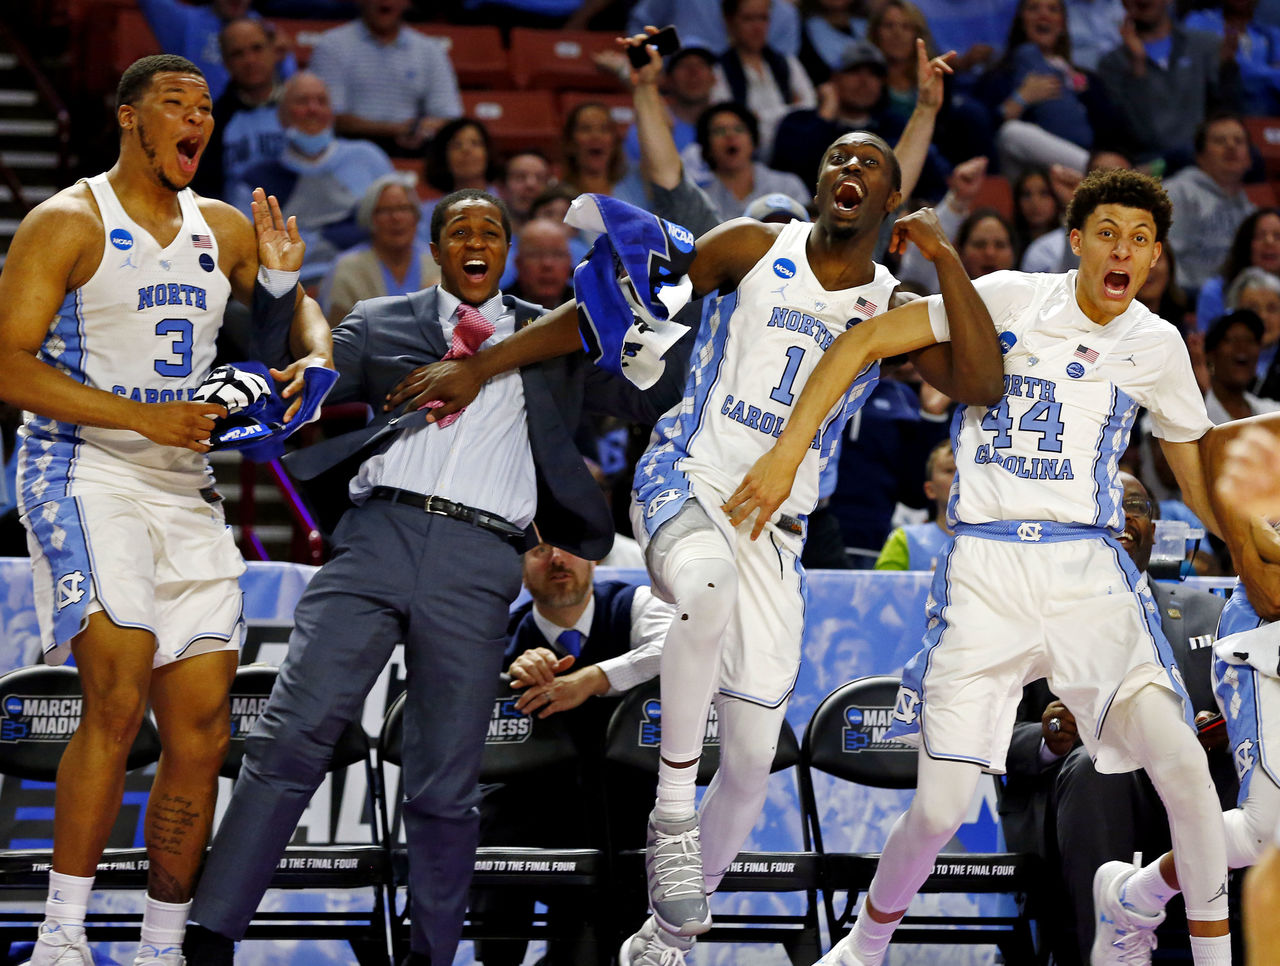 Cropped 2017 03 17t221617z 1424689694 nocid rtrmadp 3 ncaa basketball ncaa tournament first round north carolina vs texas southern